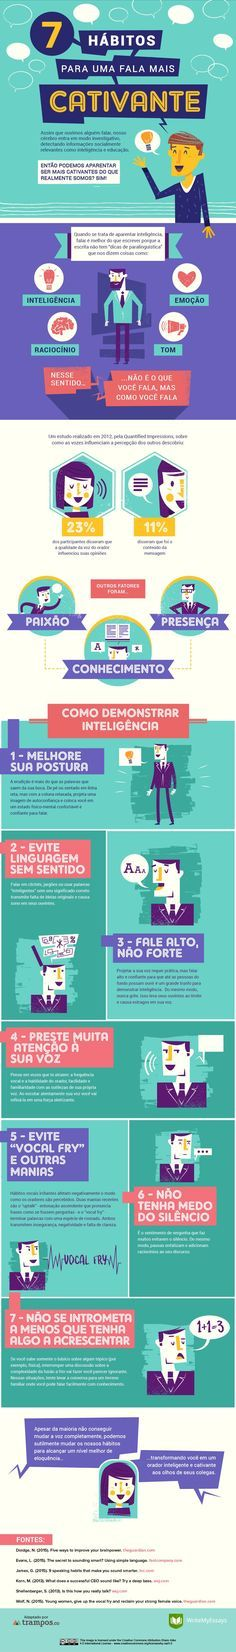 7 Speaking Habits That Will Make You Sound Smarter Infographic - e-Learning Infographics